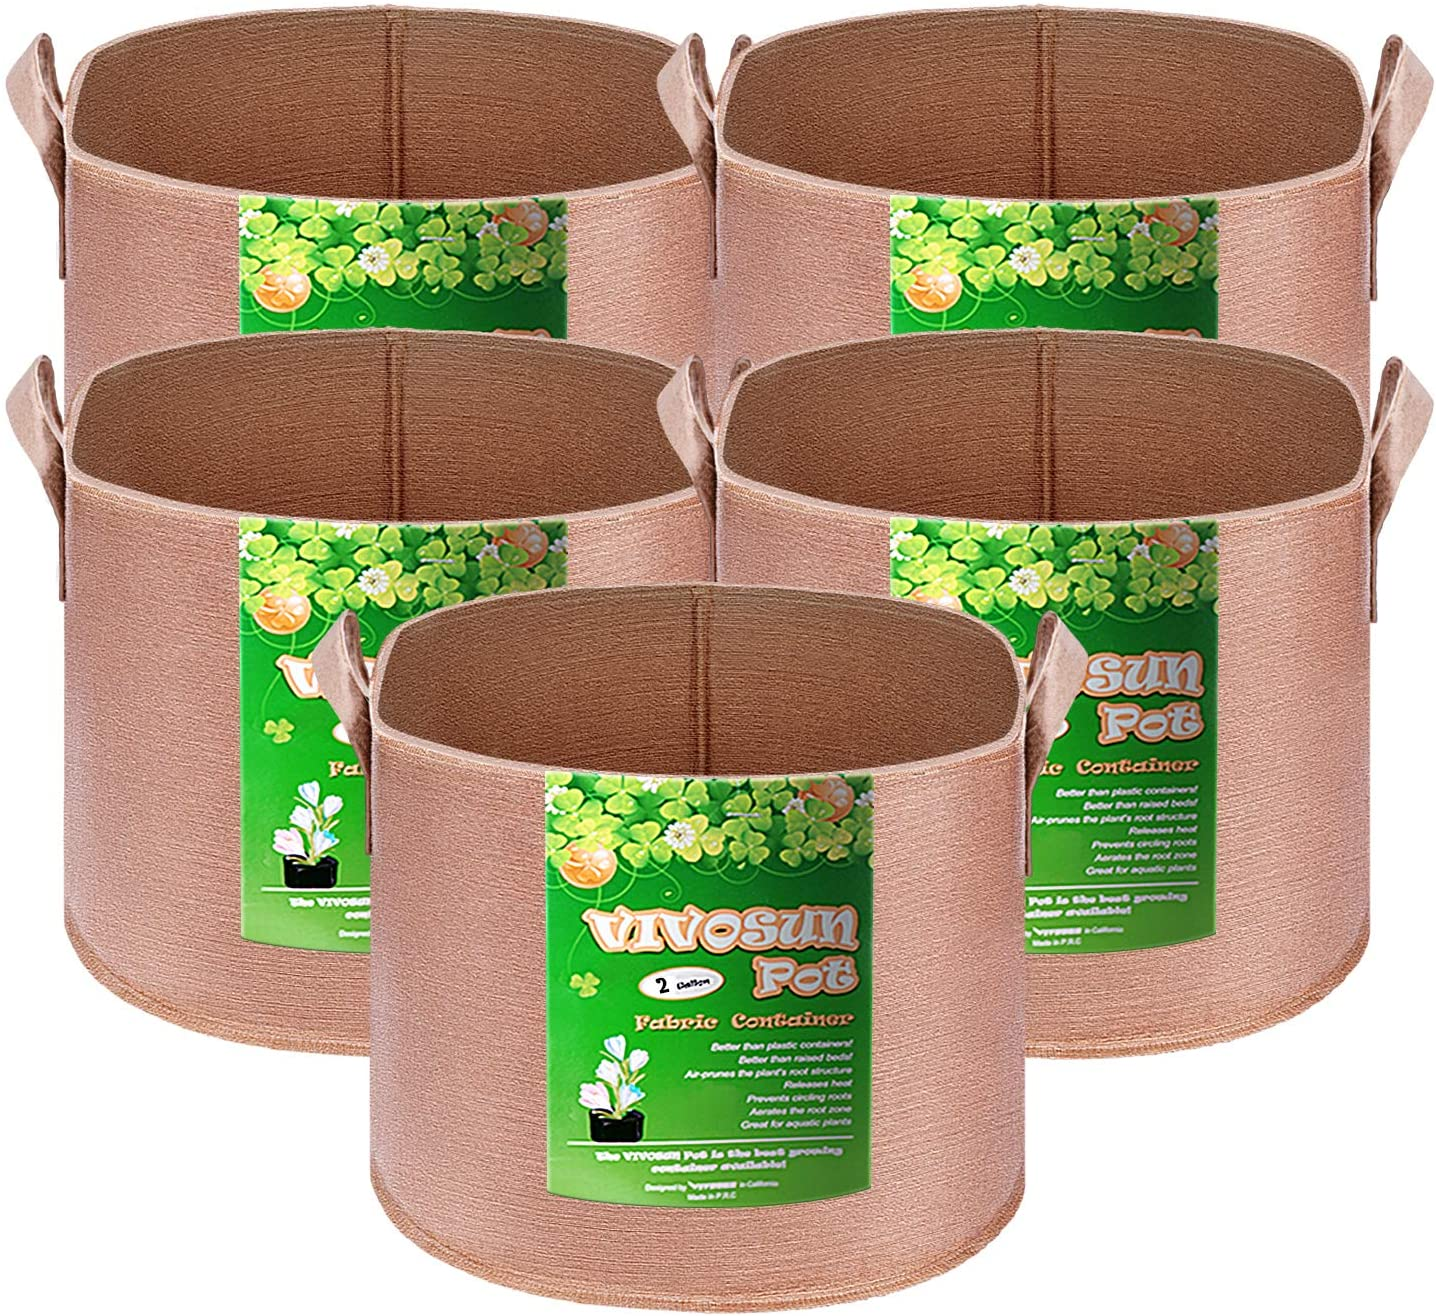 Gift Ideas for Father/'s Day Cocoyard Grow Bags 5-Pack 15 Gallon 280G Nonwoven Aeration Plant Fabric Pots with Handles